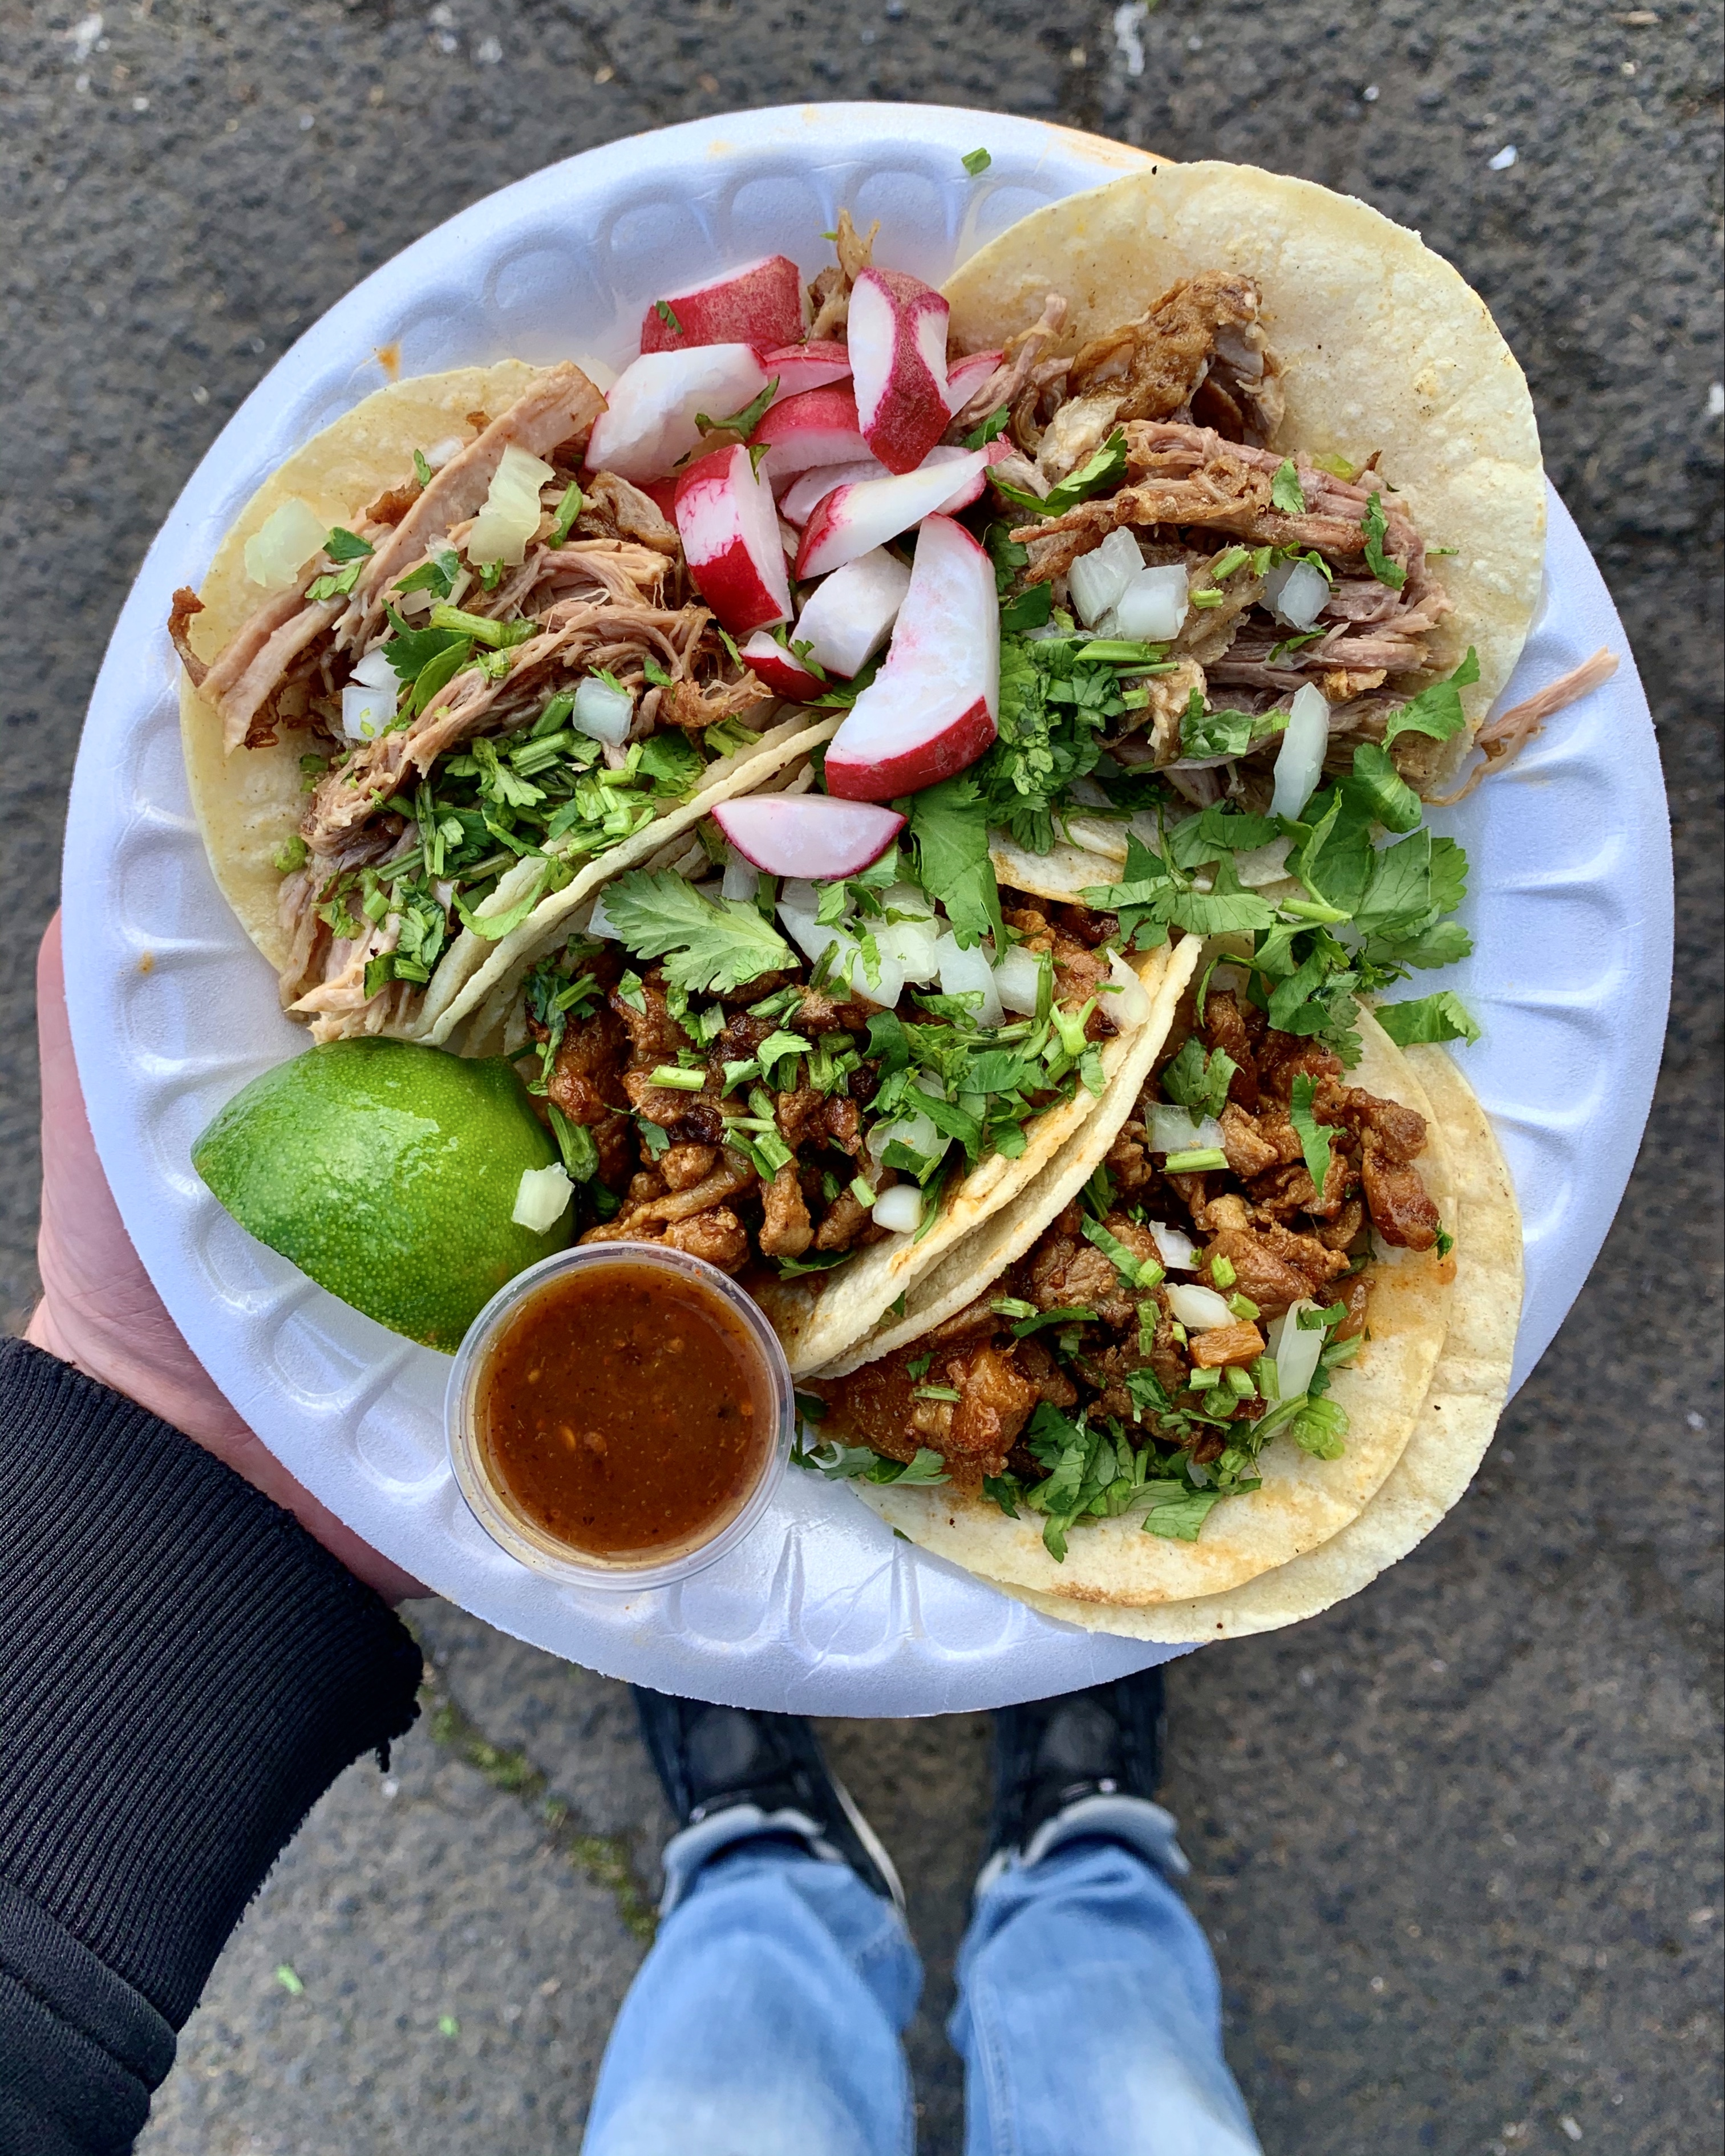 A man holds a plate with four tacos, a lime, and a thing of salsa on a white disposable plate. These tacos are from La Morenita Ricos Tacos.